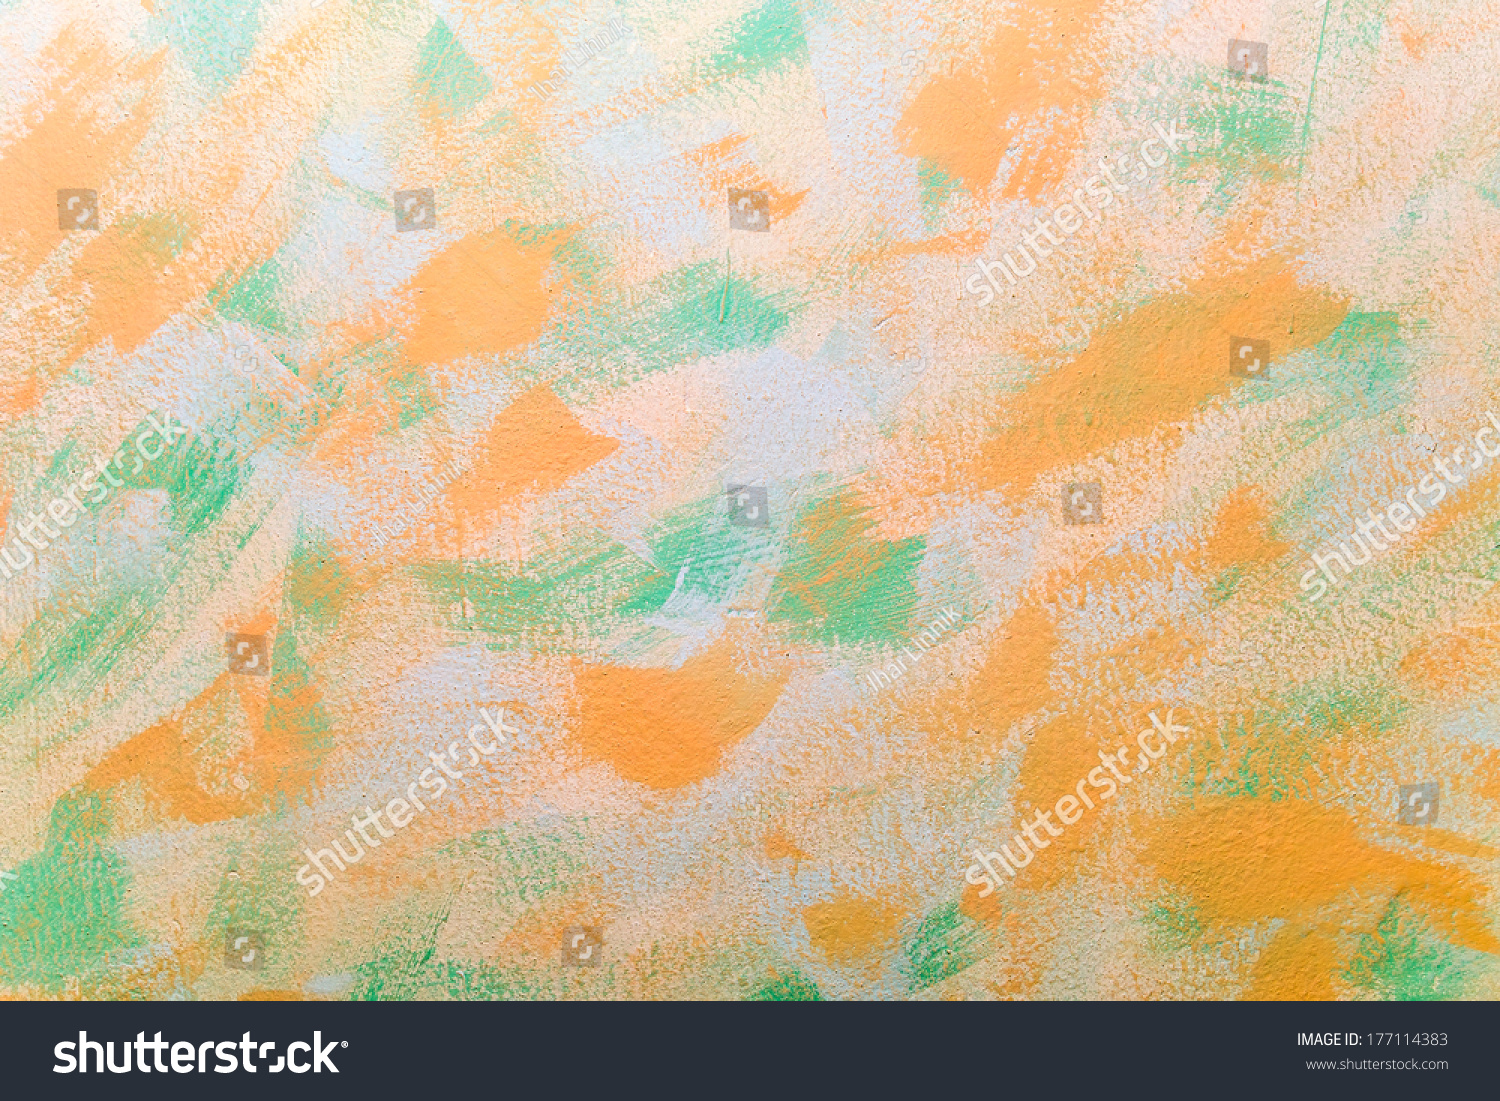 concrete wall painted in different colors   EZ Canvas